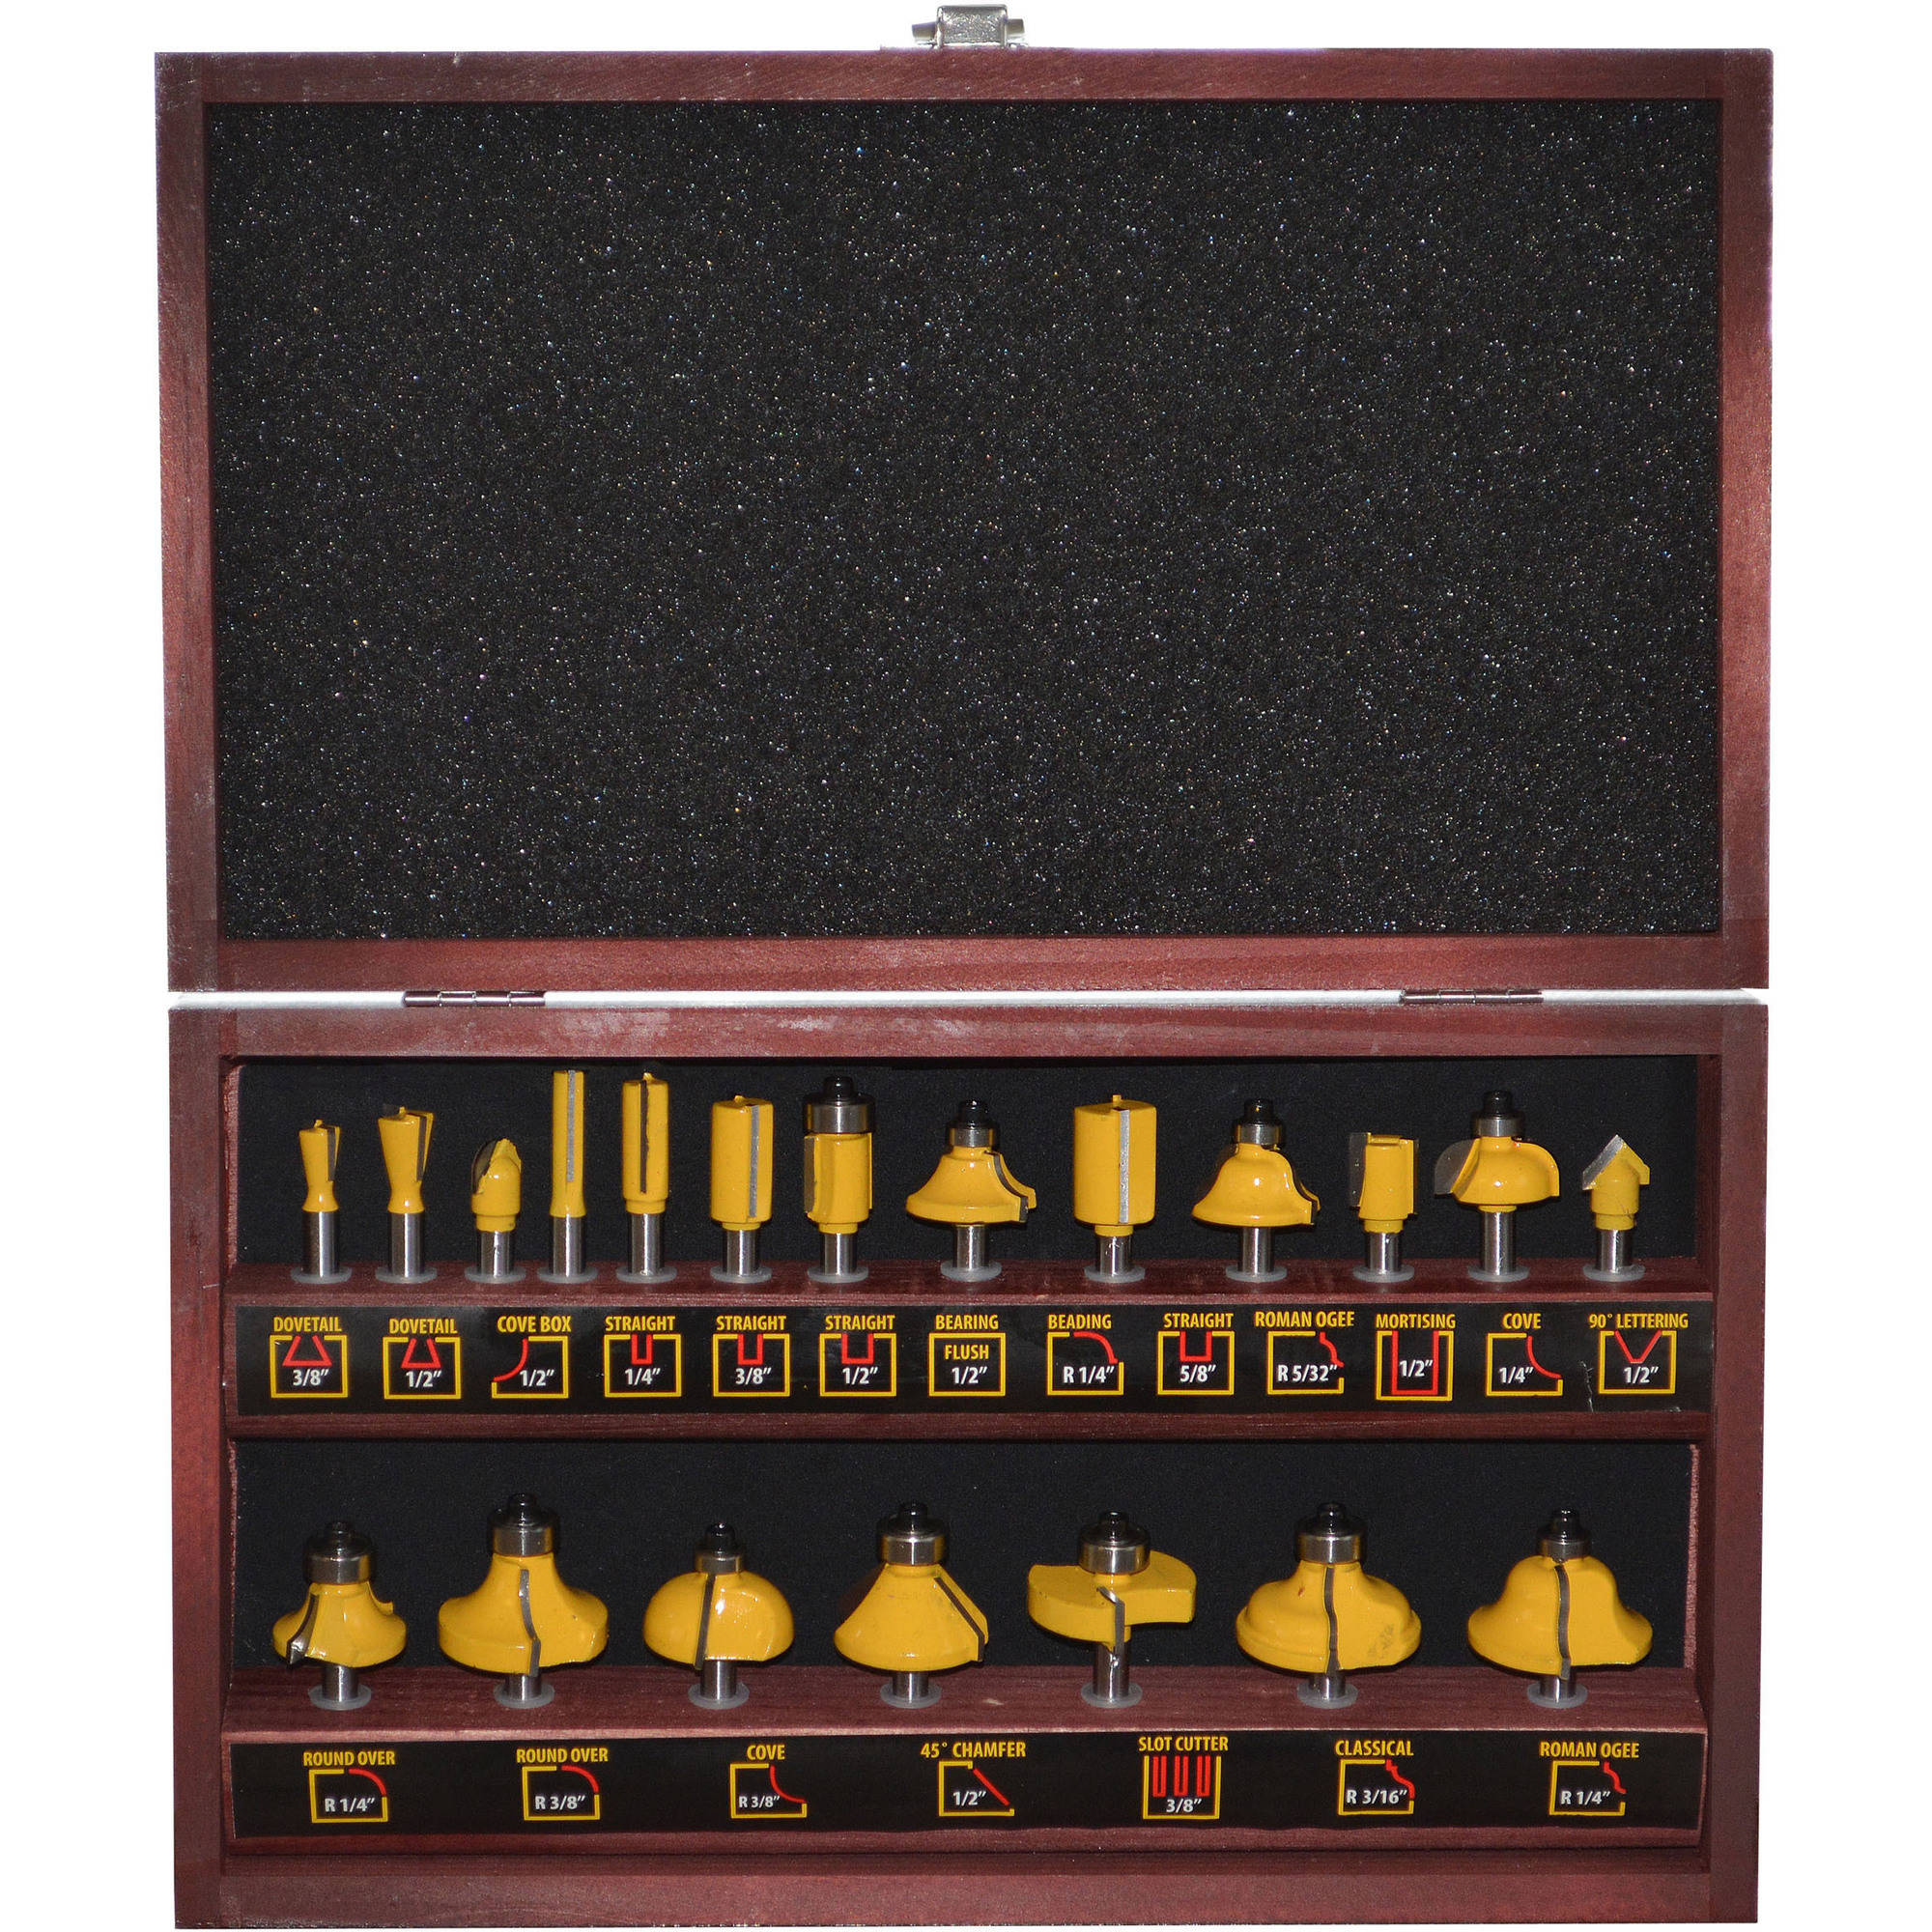 Pro-Series 20-Piece Router Bit Set in Wood Box by Buffalo Corp